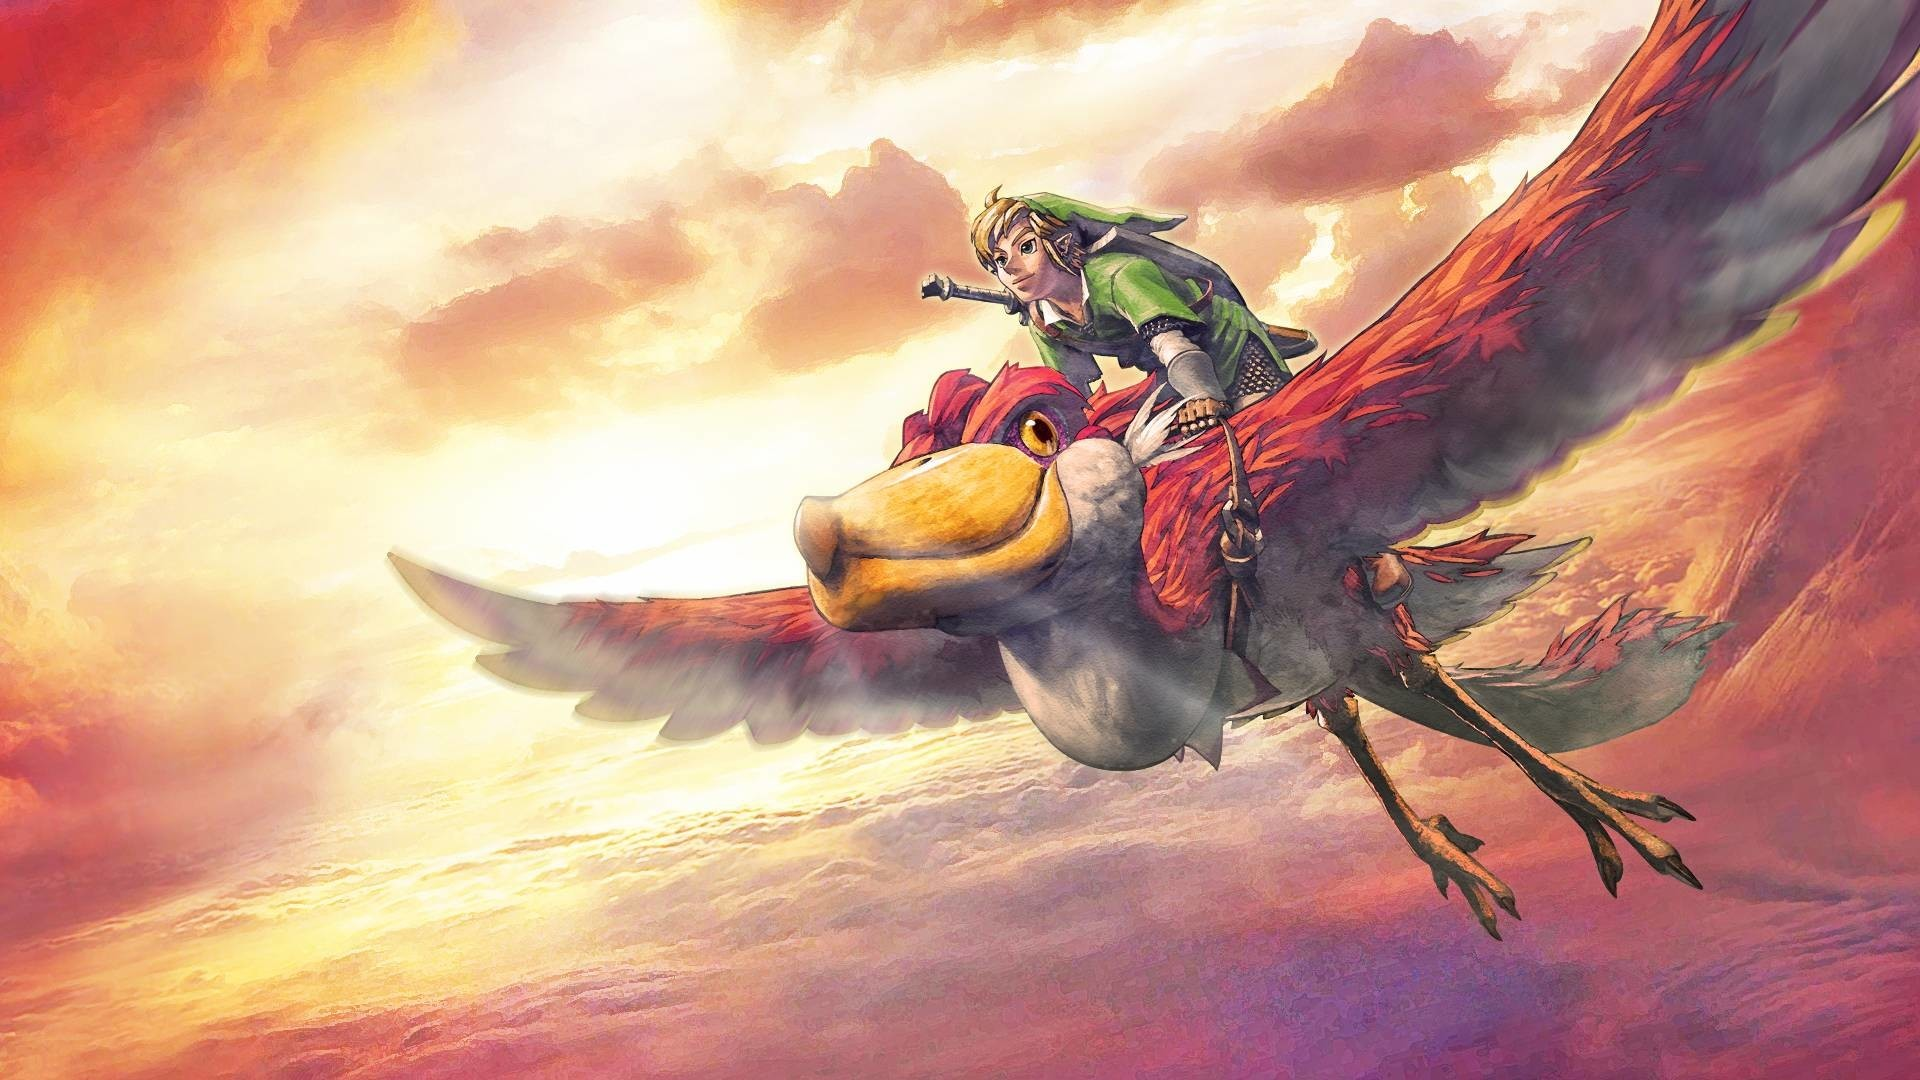 1920x1080  33 The Legend Of Zelda: Skyward Sword Wallpapers | The Legend Of  ..